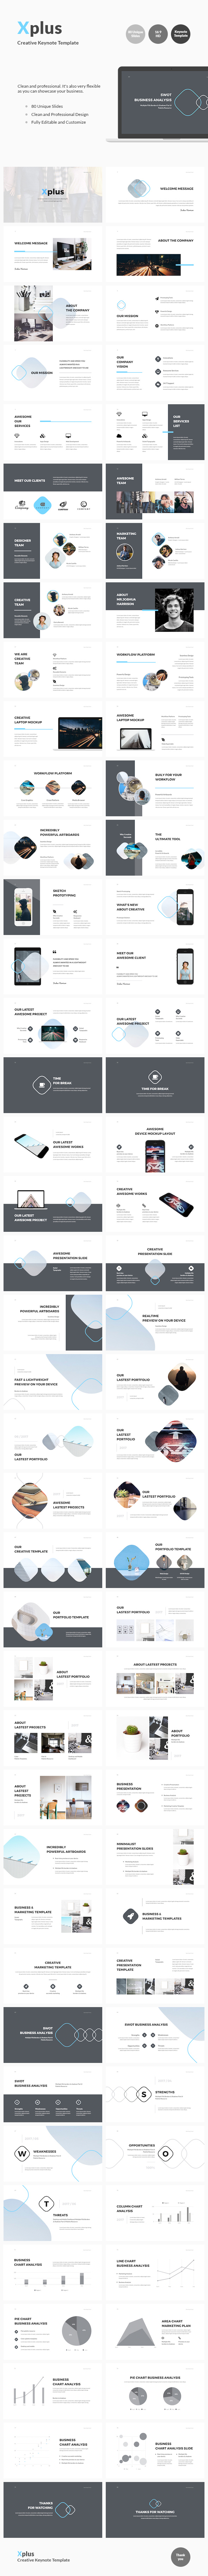 Xplus - Creative Keynote Template - Business Keynote Templates